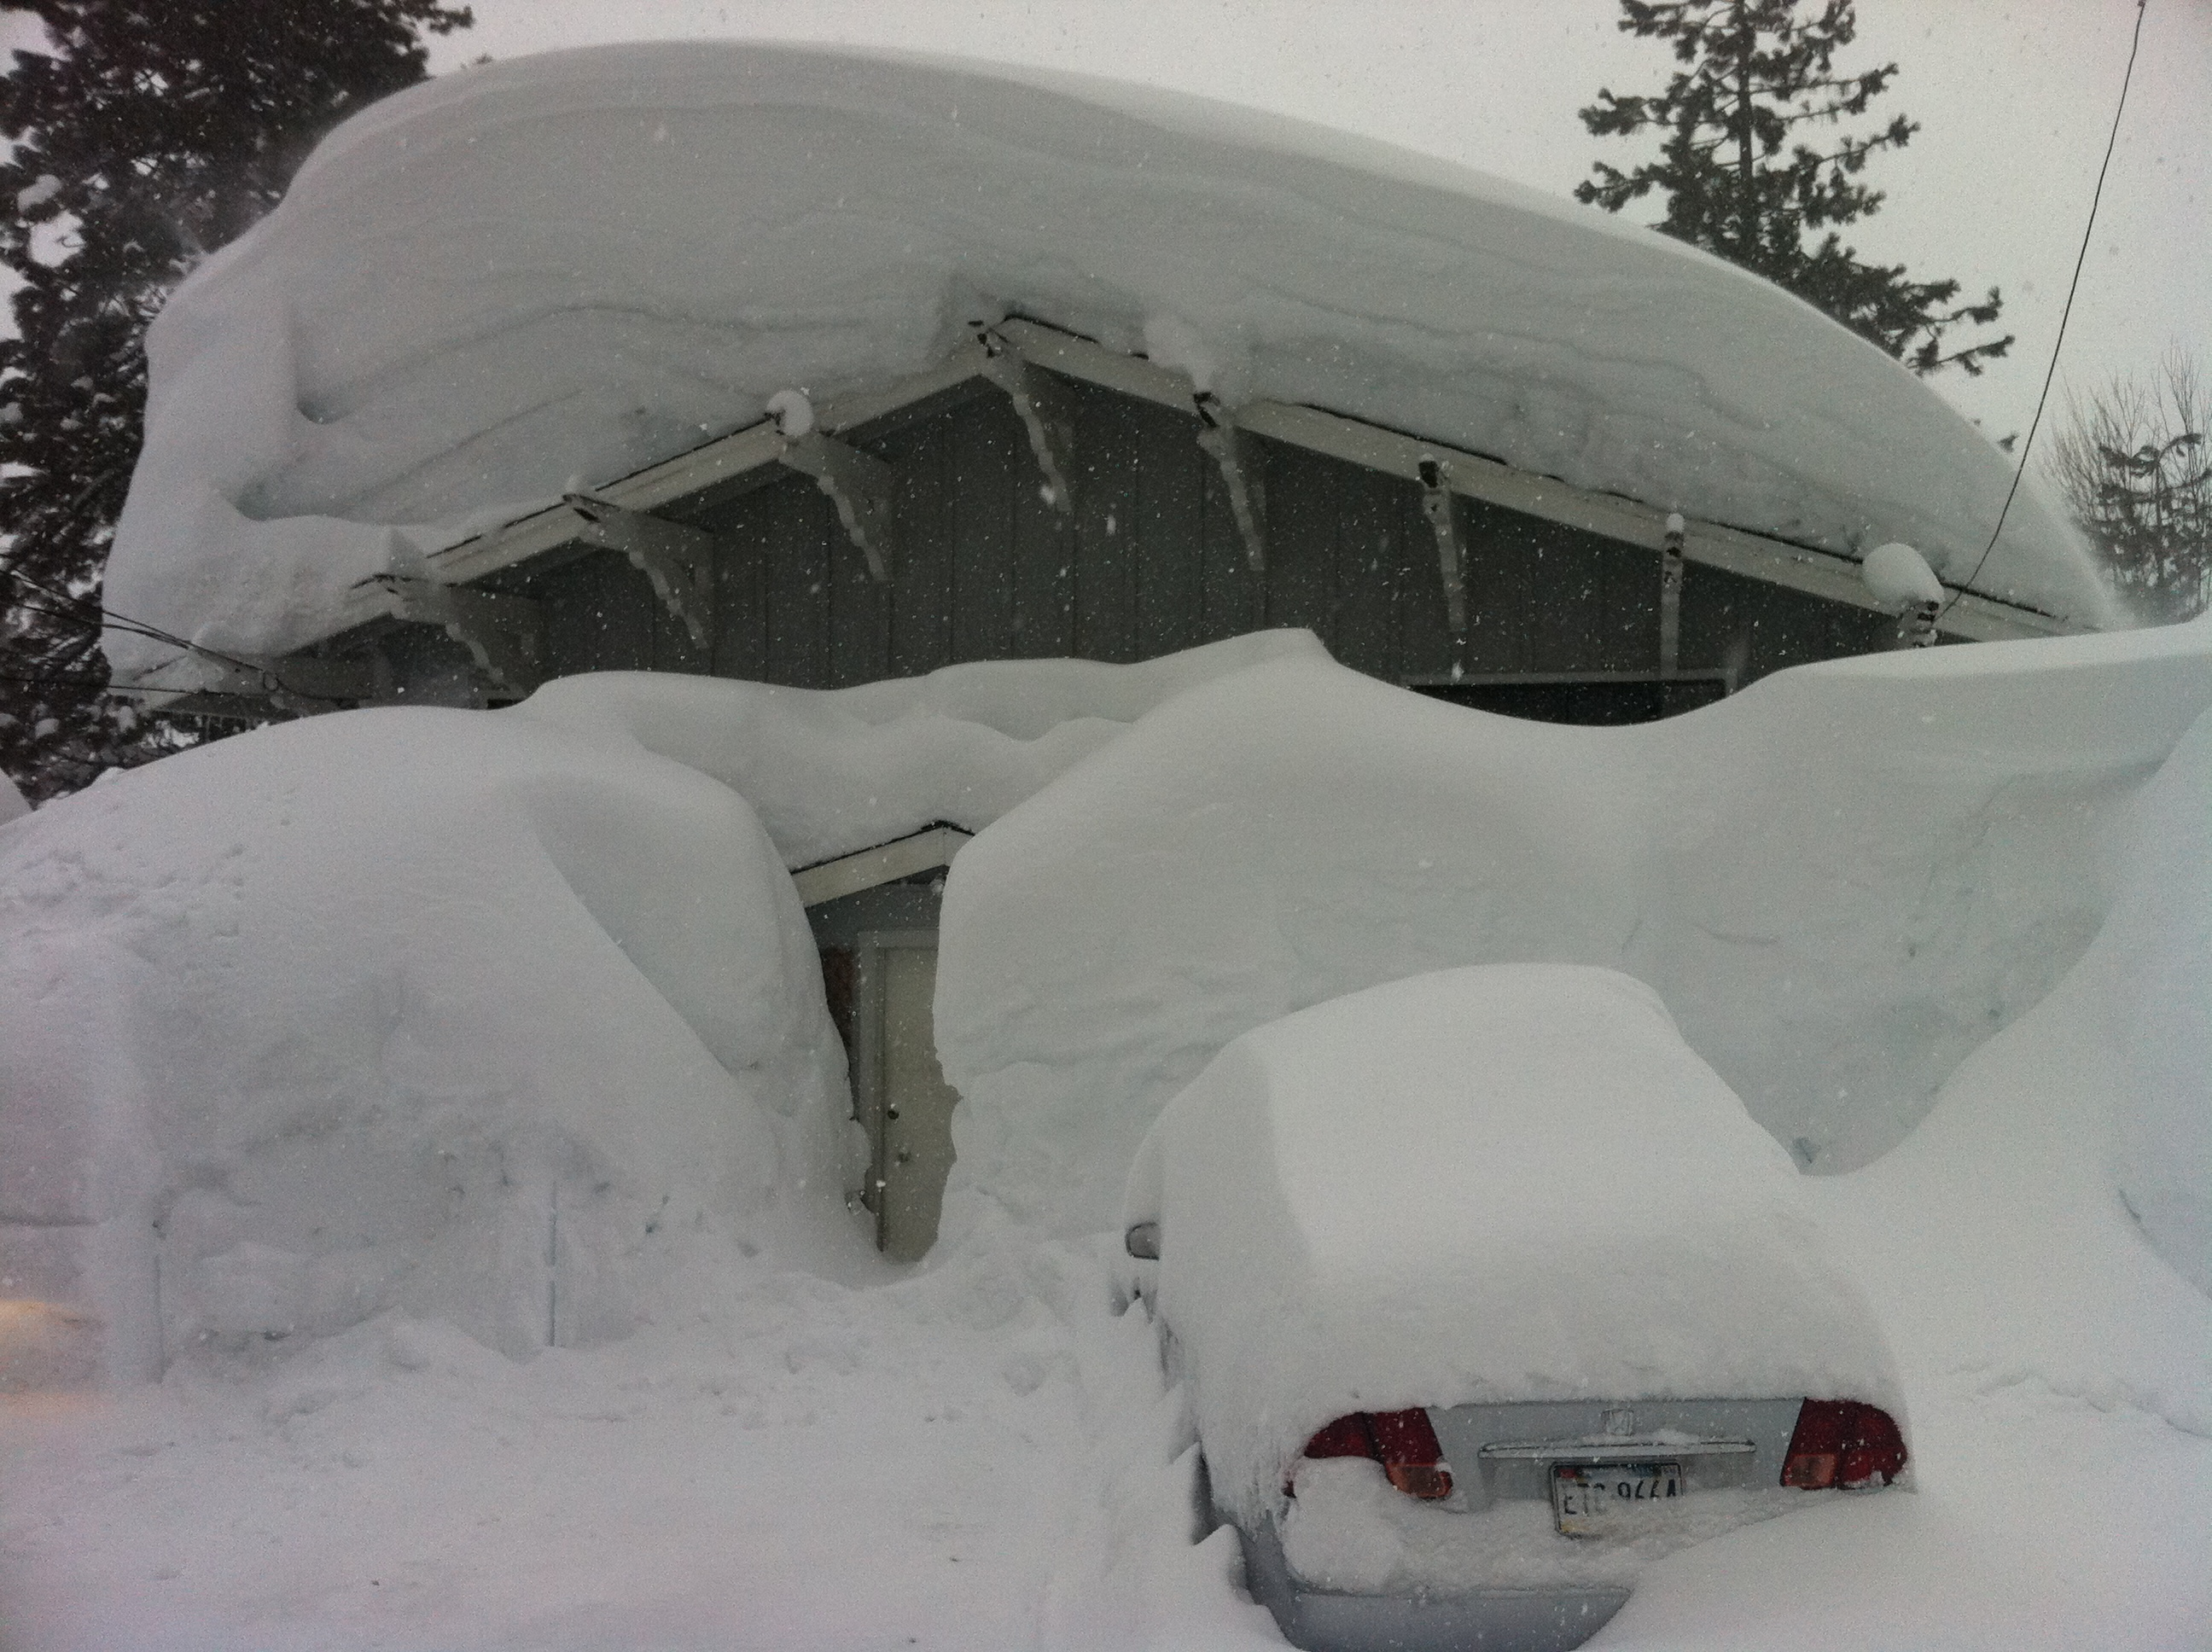 House On Sandy Way In Squaw Valley Ca In March 2011 P O Snow Ins